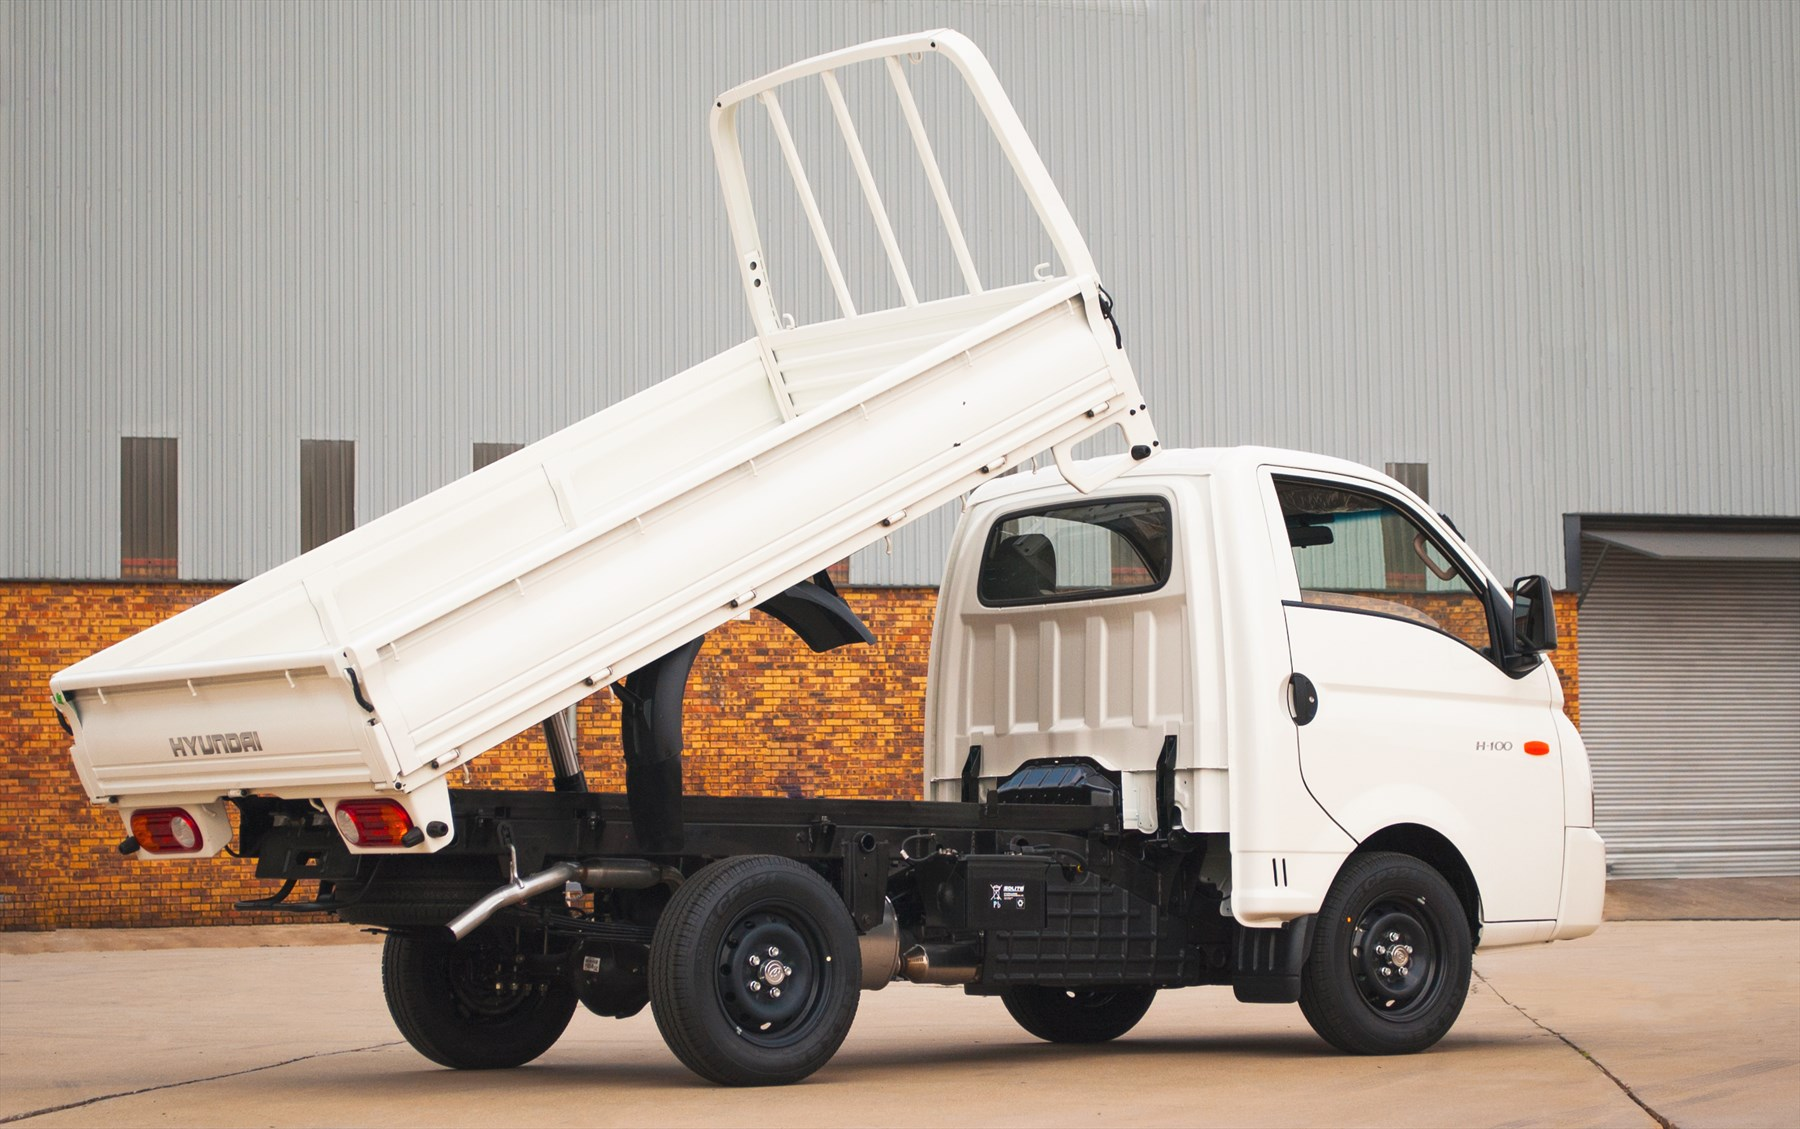 H-100 Tipper also available.